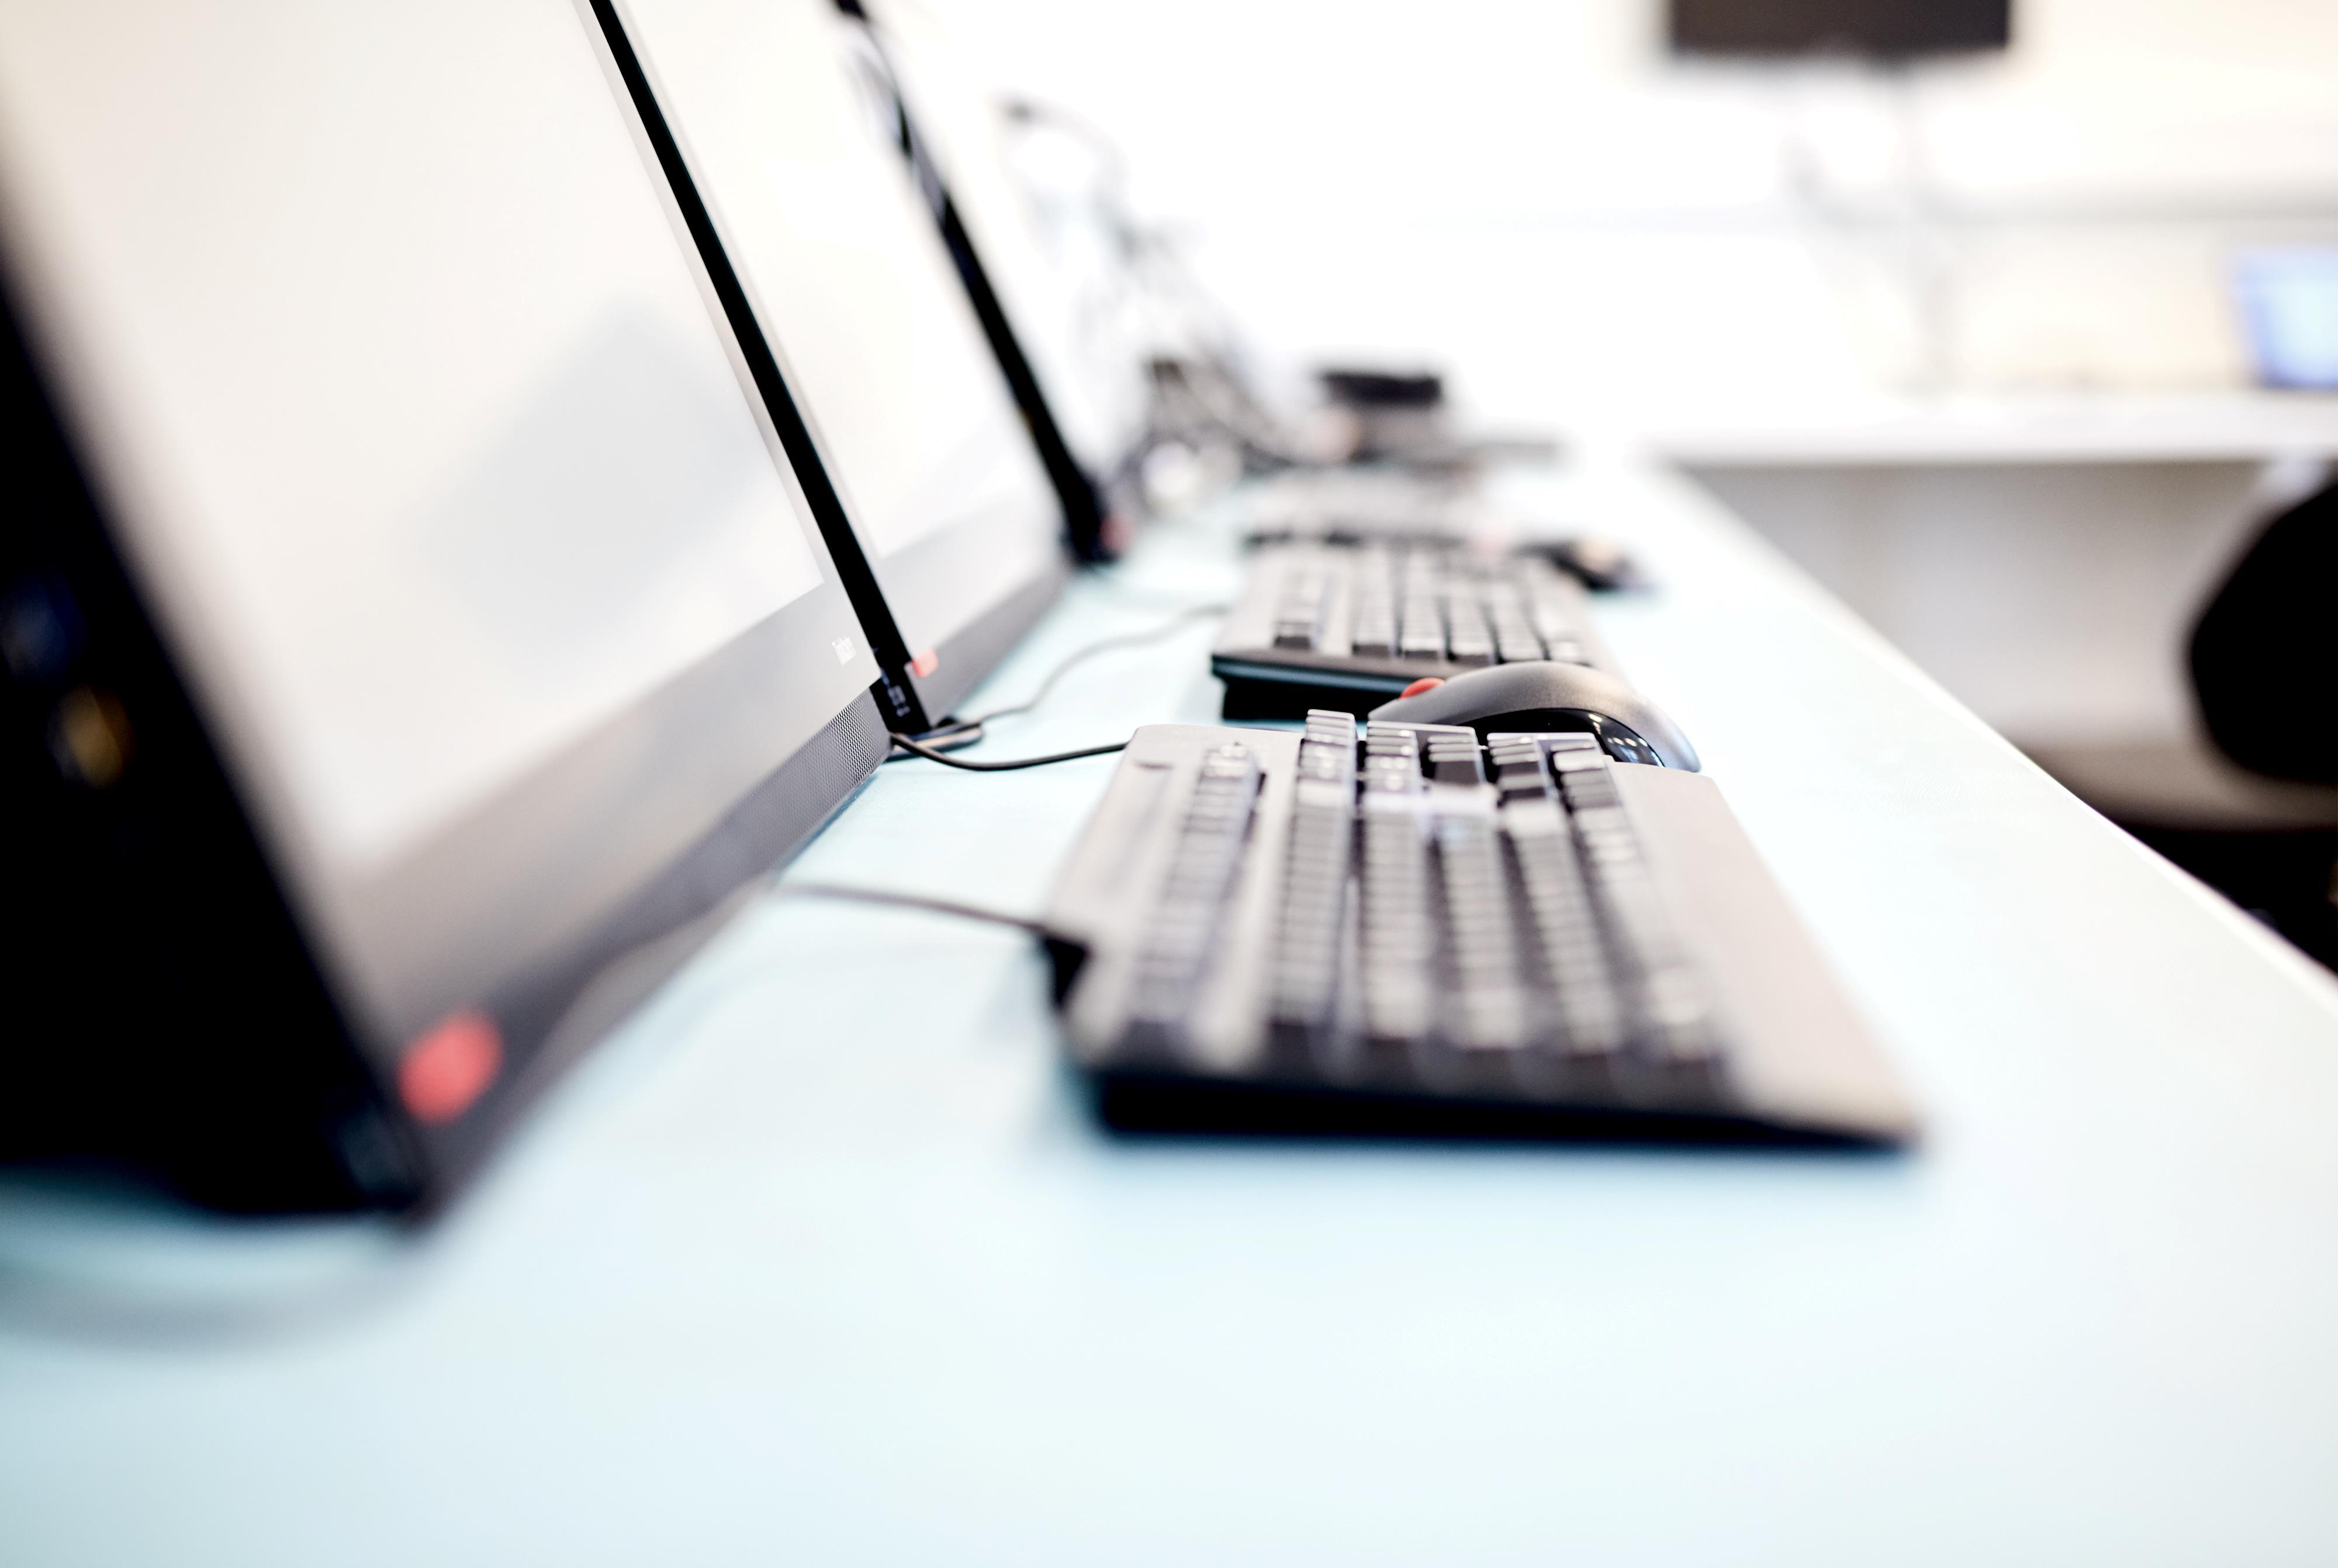 IT equipment for your business - get the right solutions here